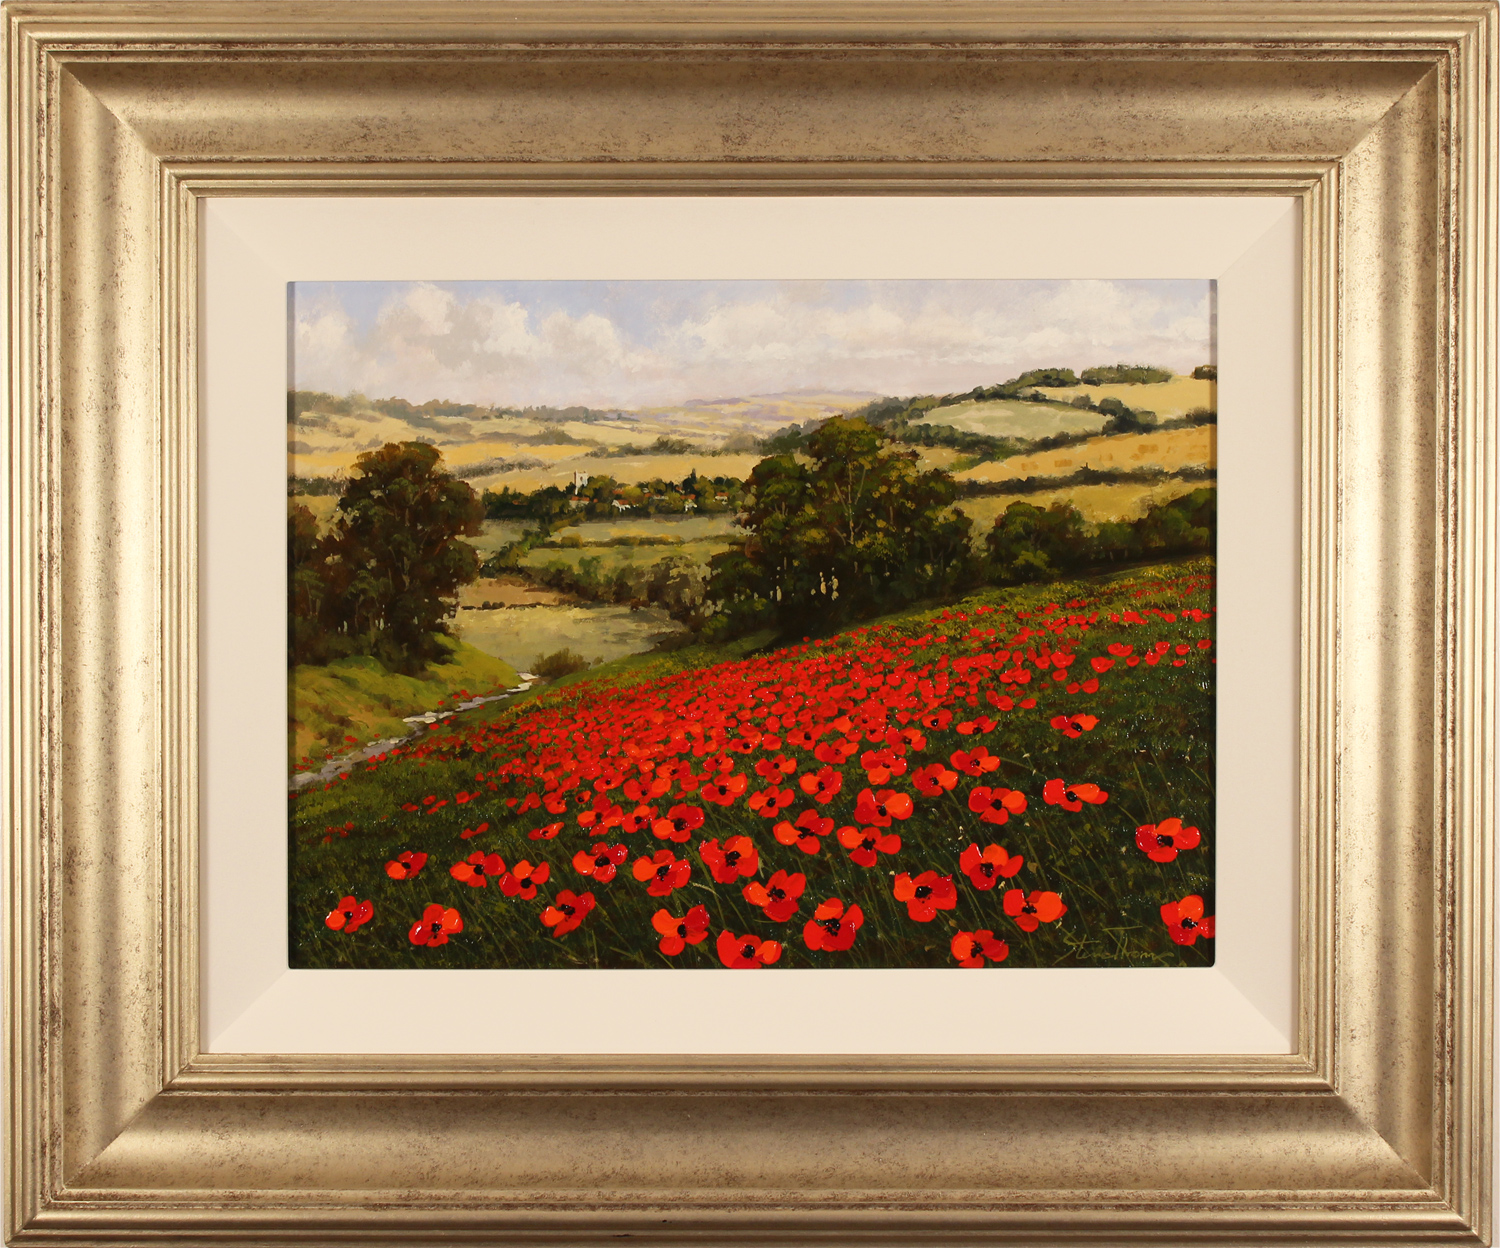 Steve Thoms, Original oil painting on panel, Poppy Fields, North Yorkshire. Click to enlarge